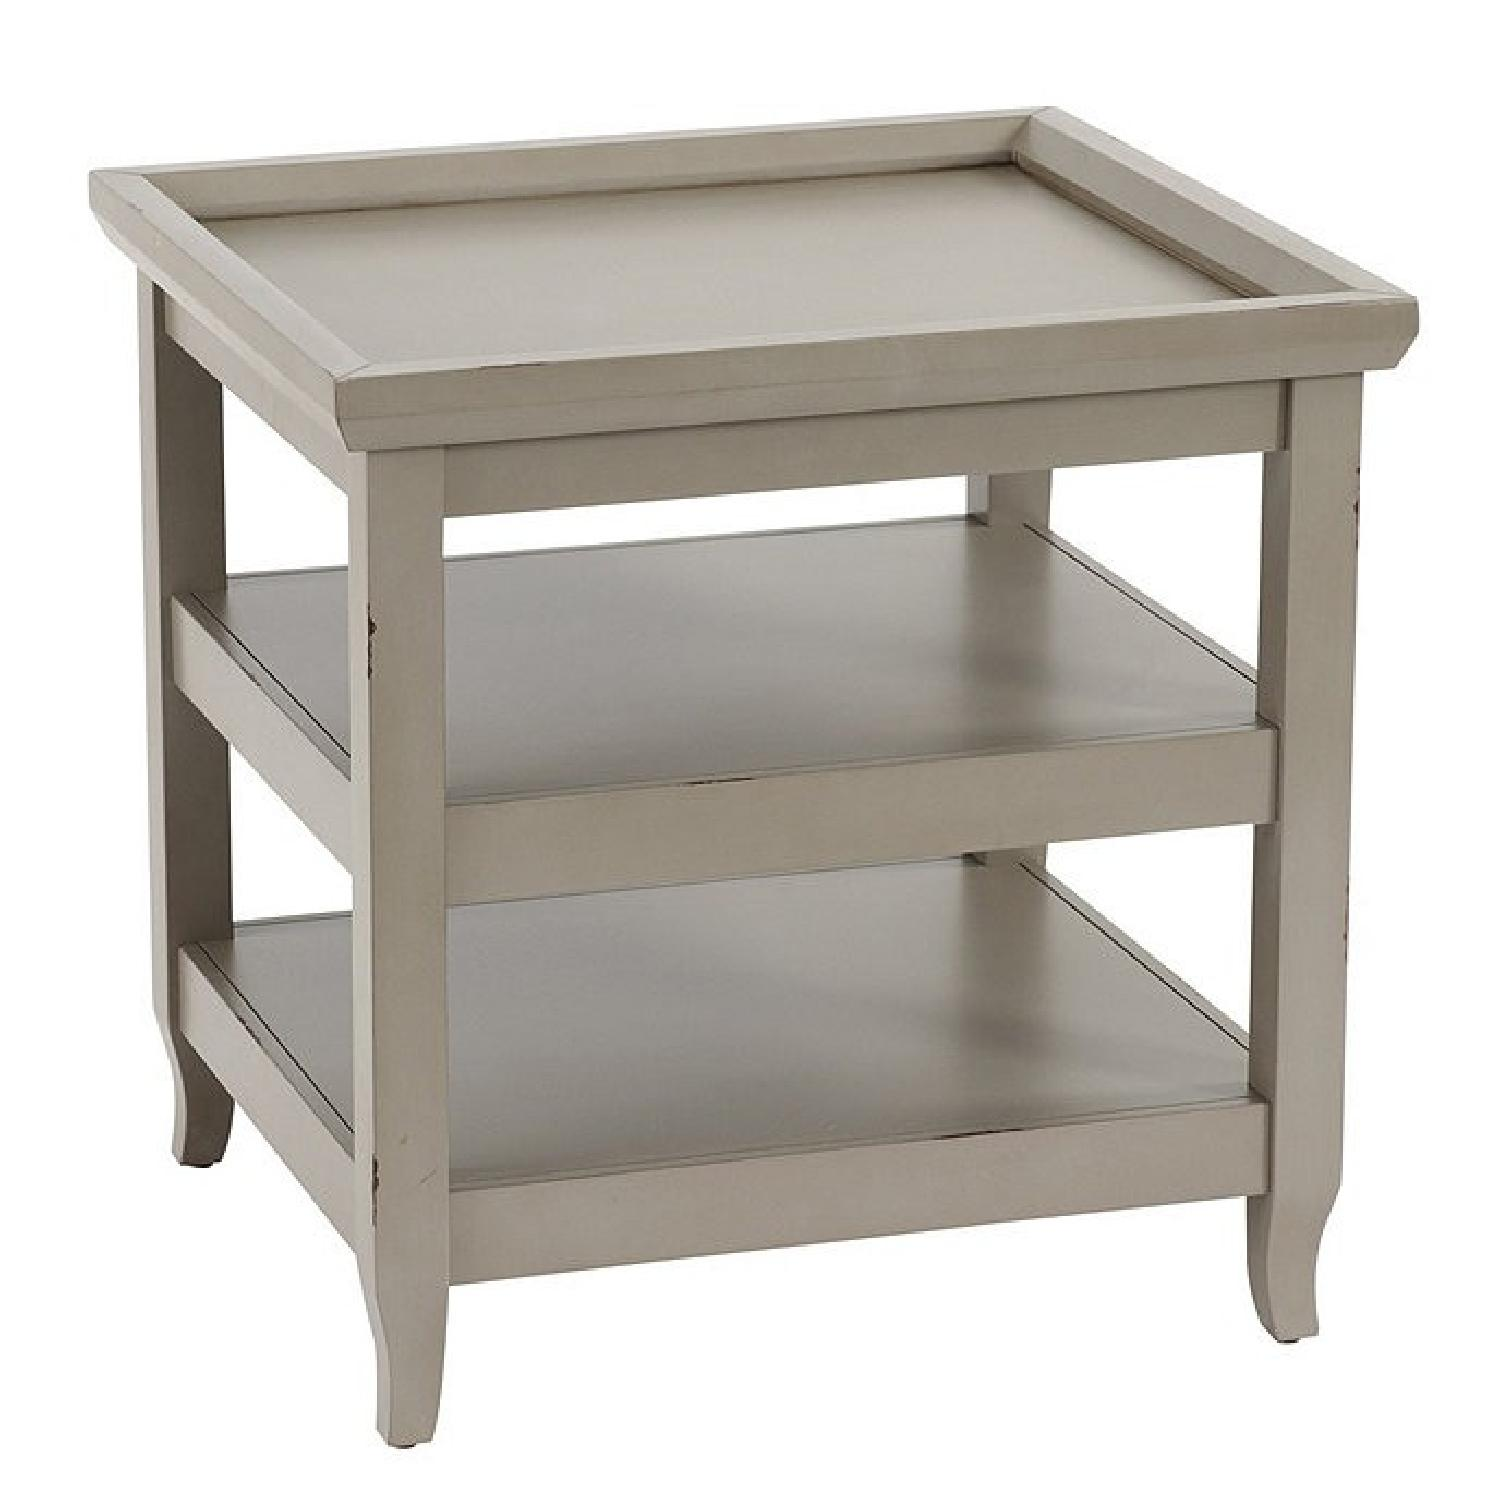 Ballard Designs Morgan End Table (Gray) - image-0